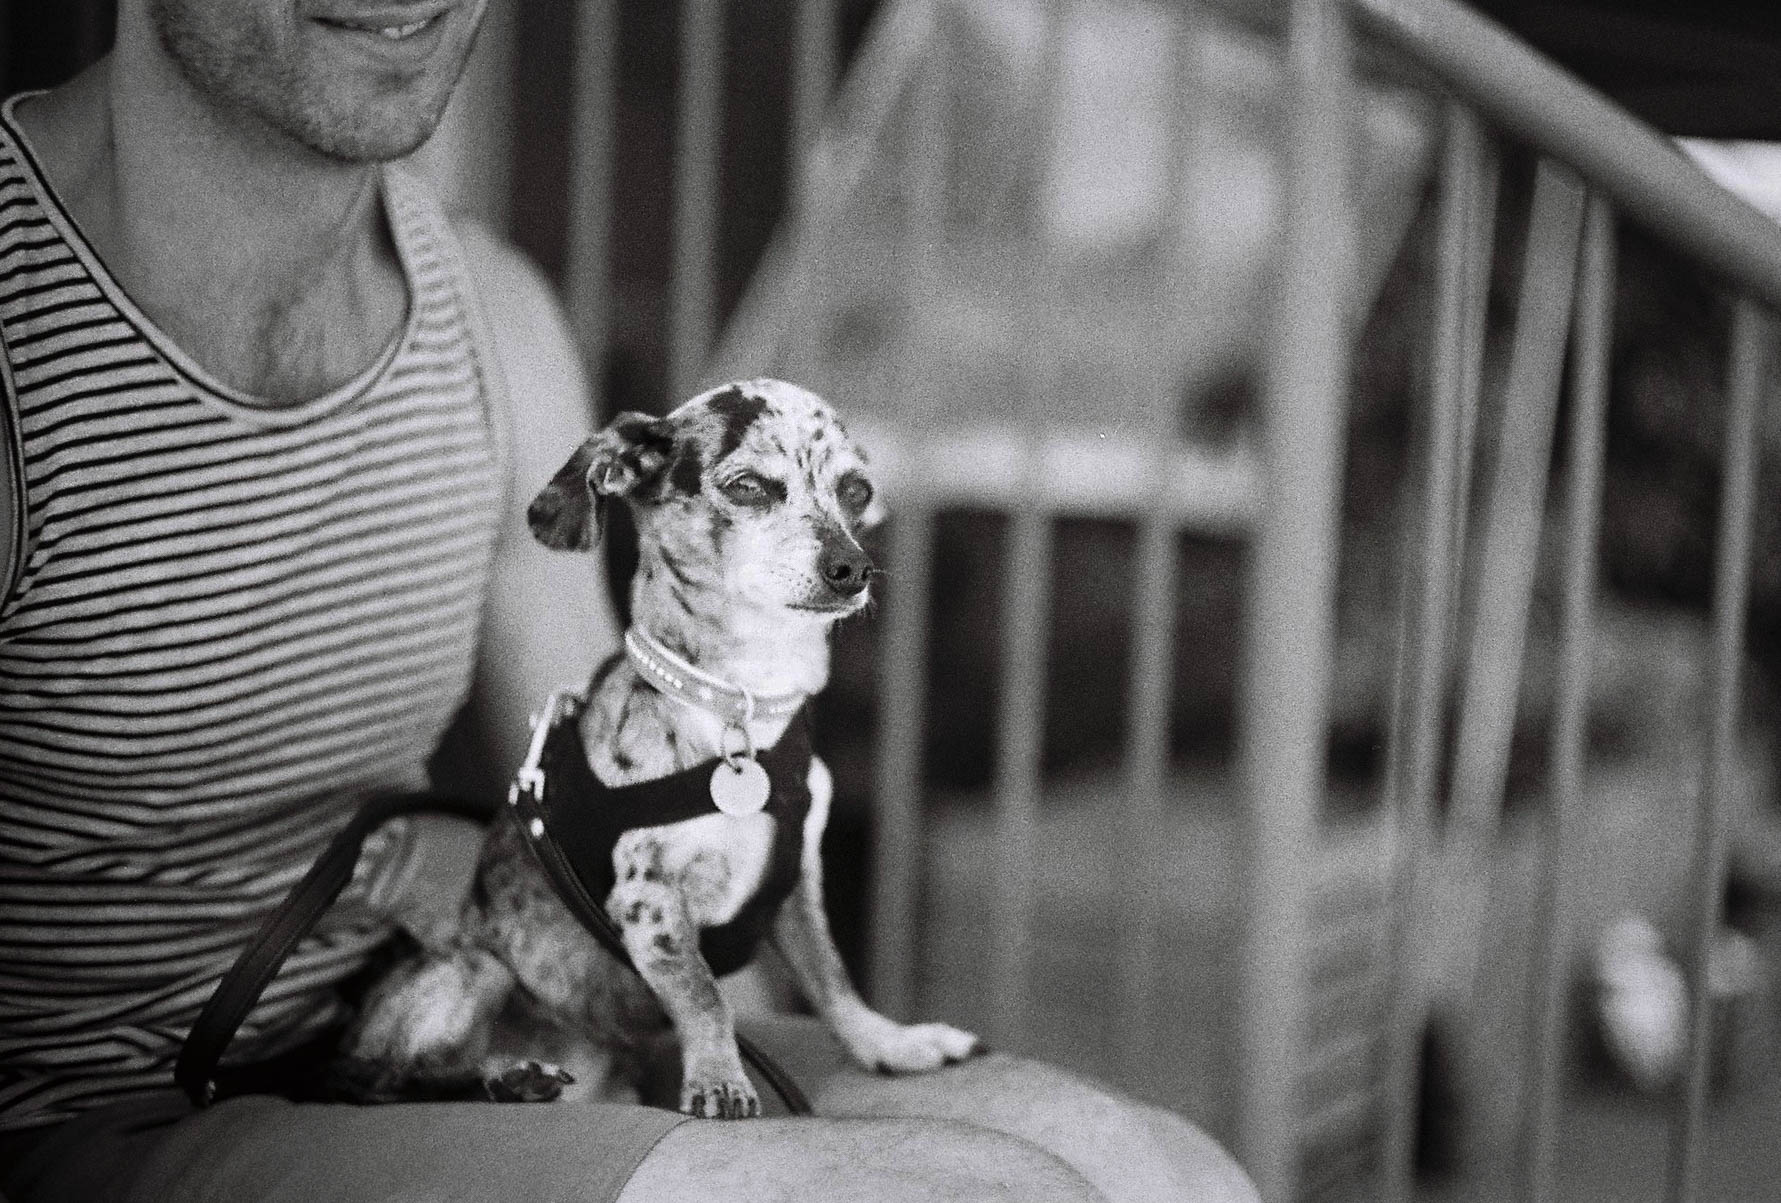 Canon L1, 50mm F1.4 lens. TMax 400, 1/1000 sec. F1.4 in the shade.